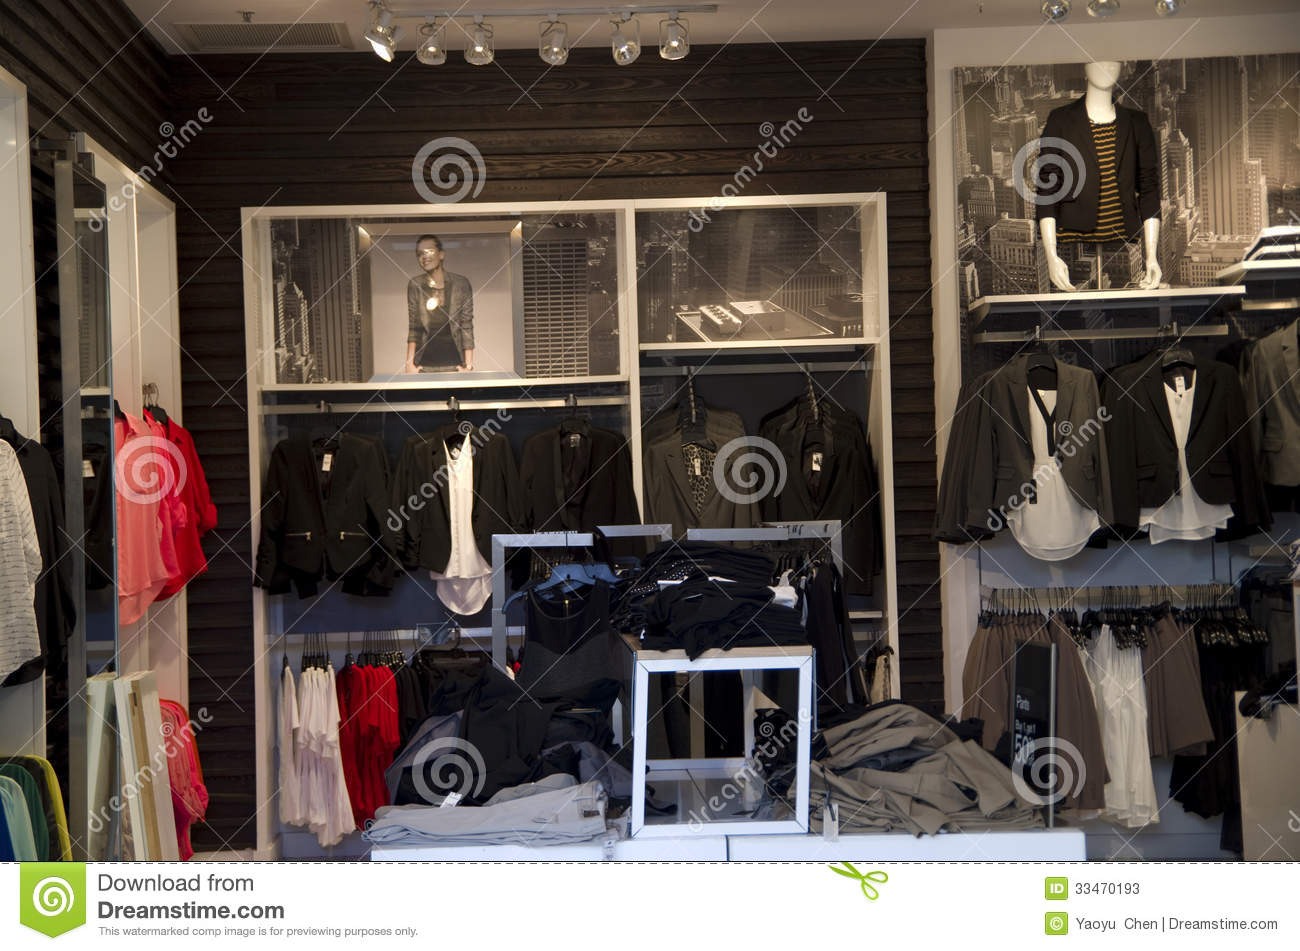 The store is cleverly divided into a women's and men's entrance, making the male customer feel like he's entering a legitimate men's store